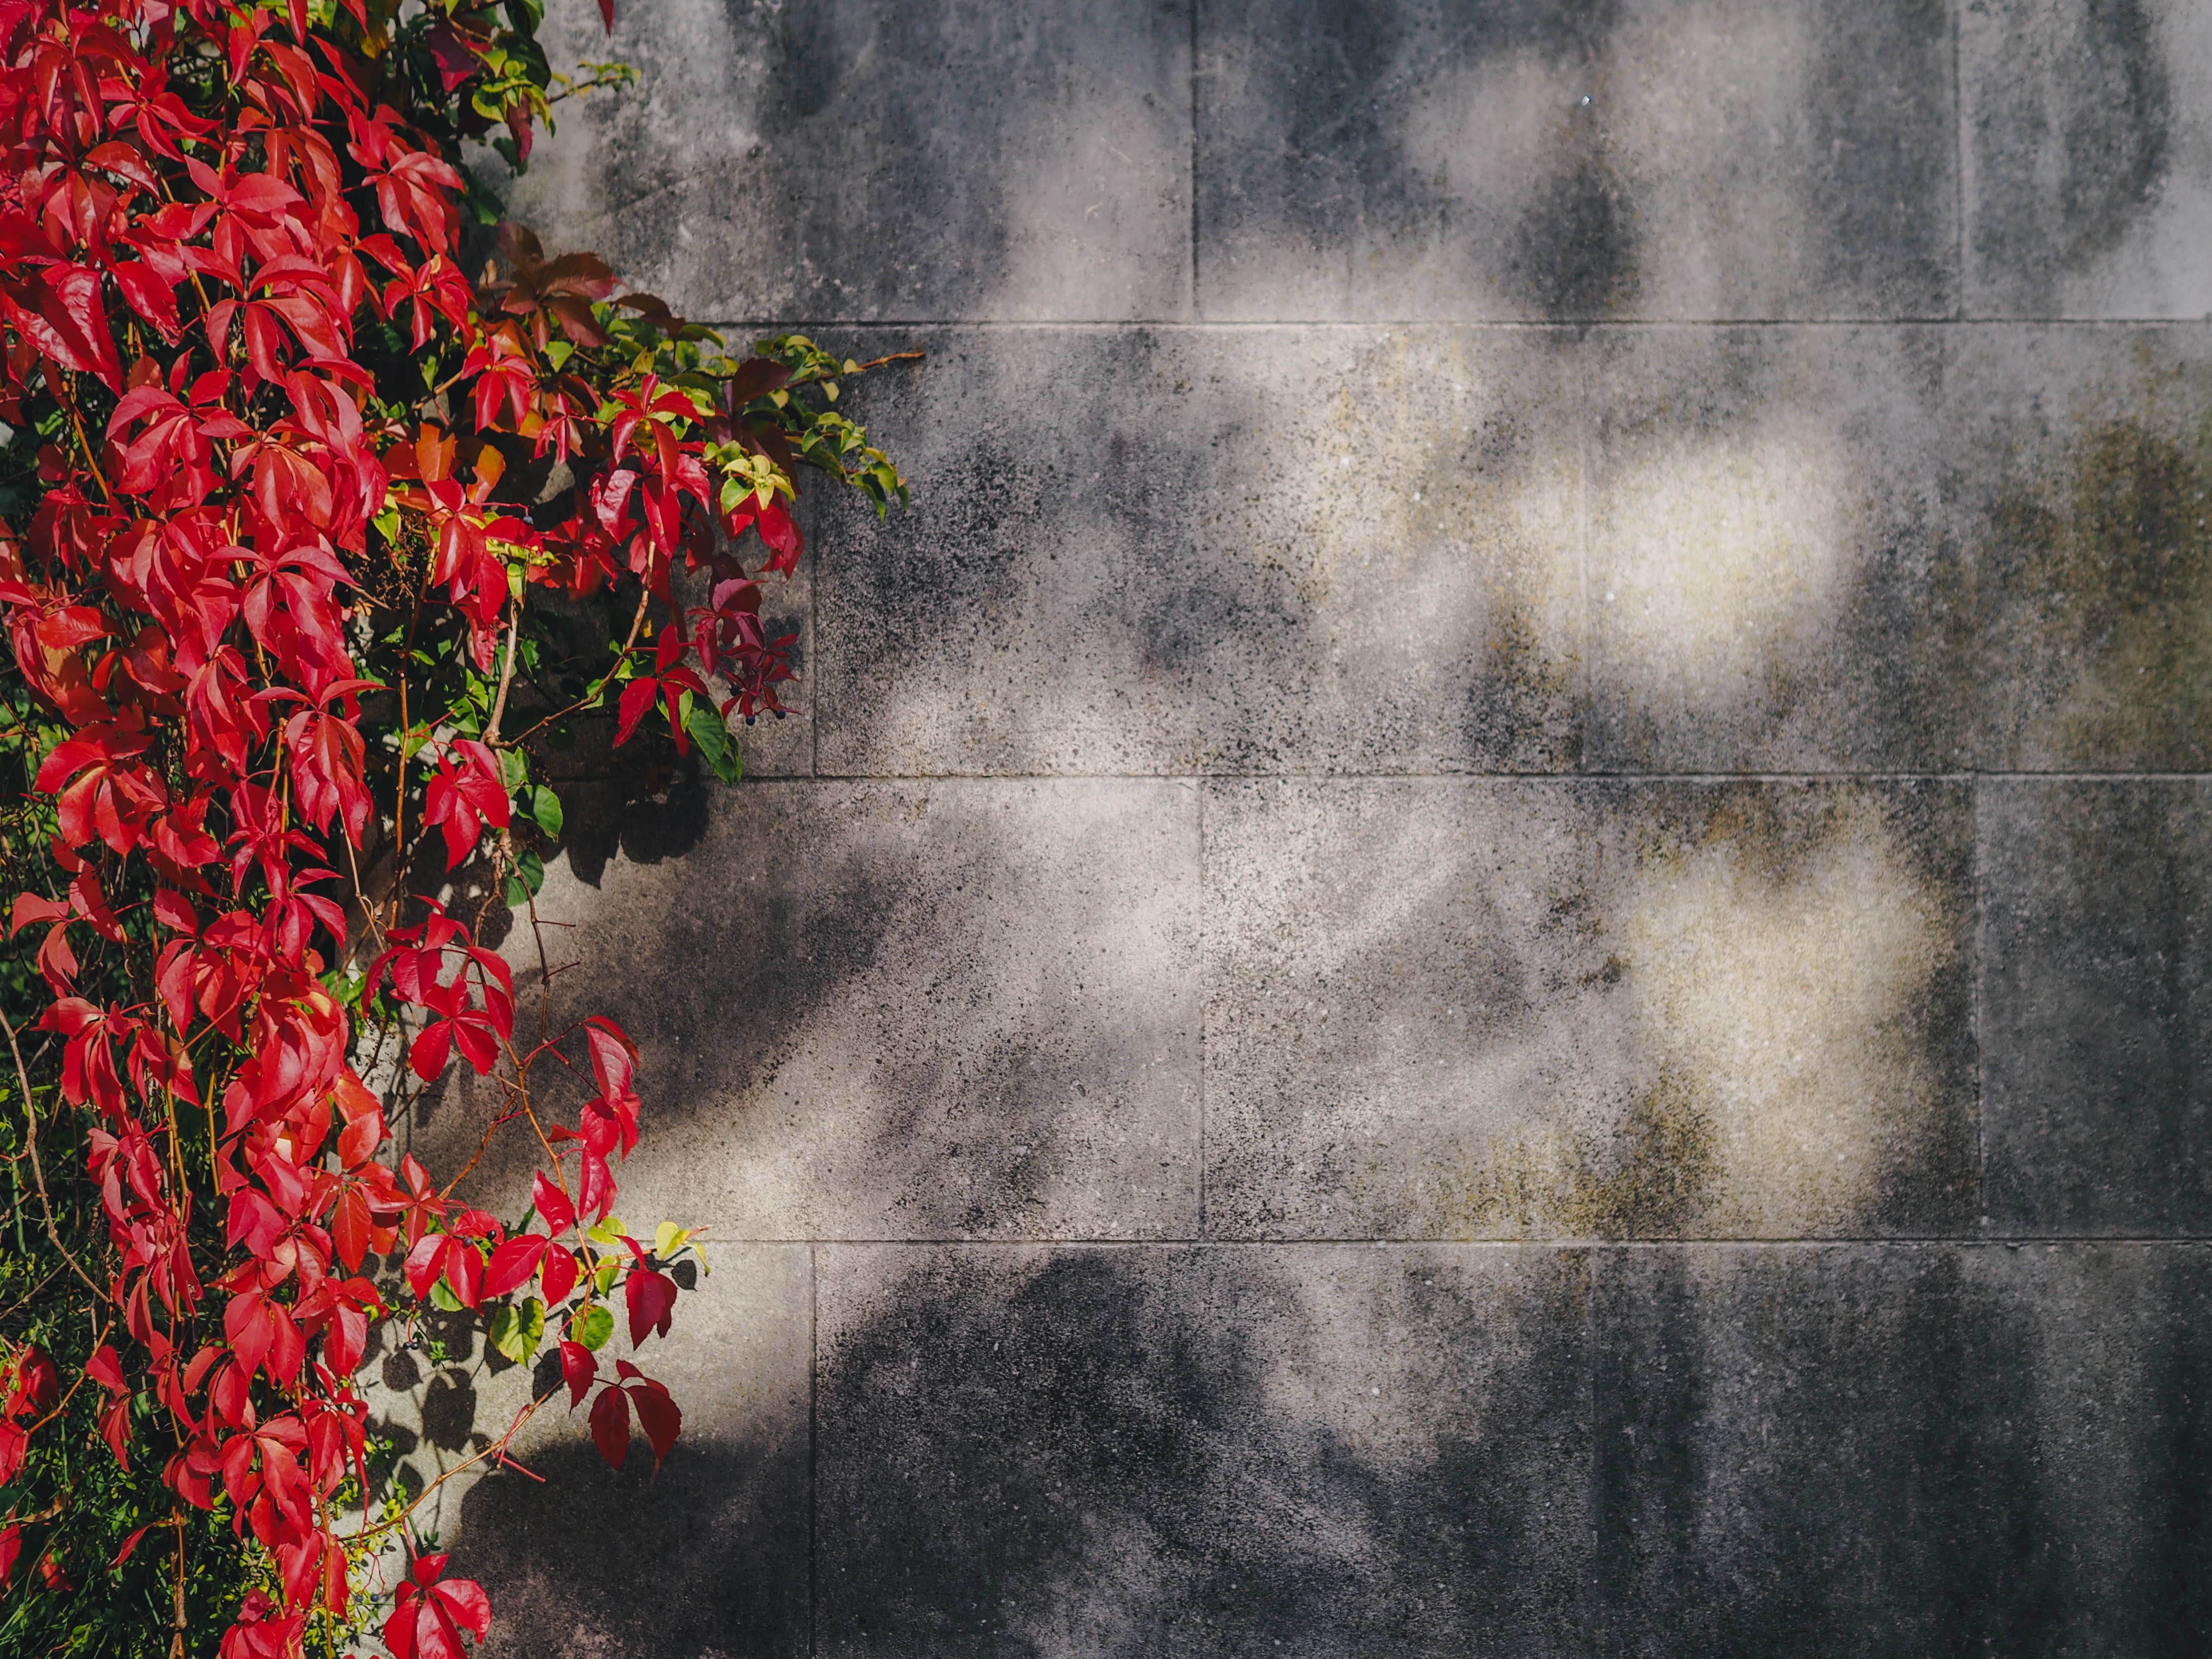 Red leaves and vines against a concrete wall during fall